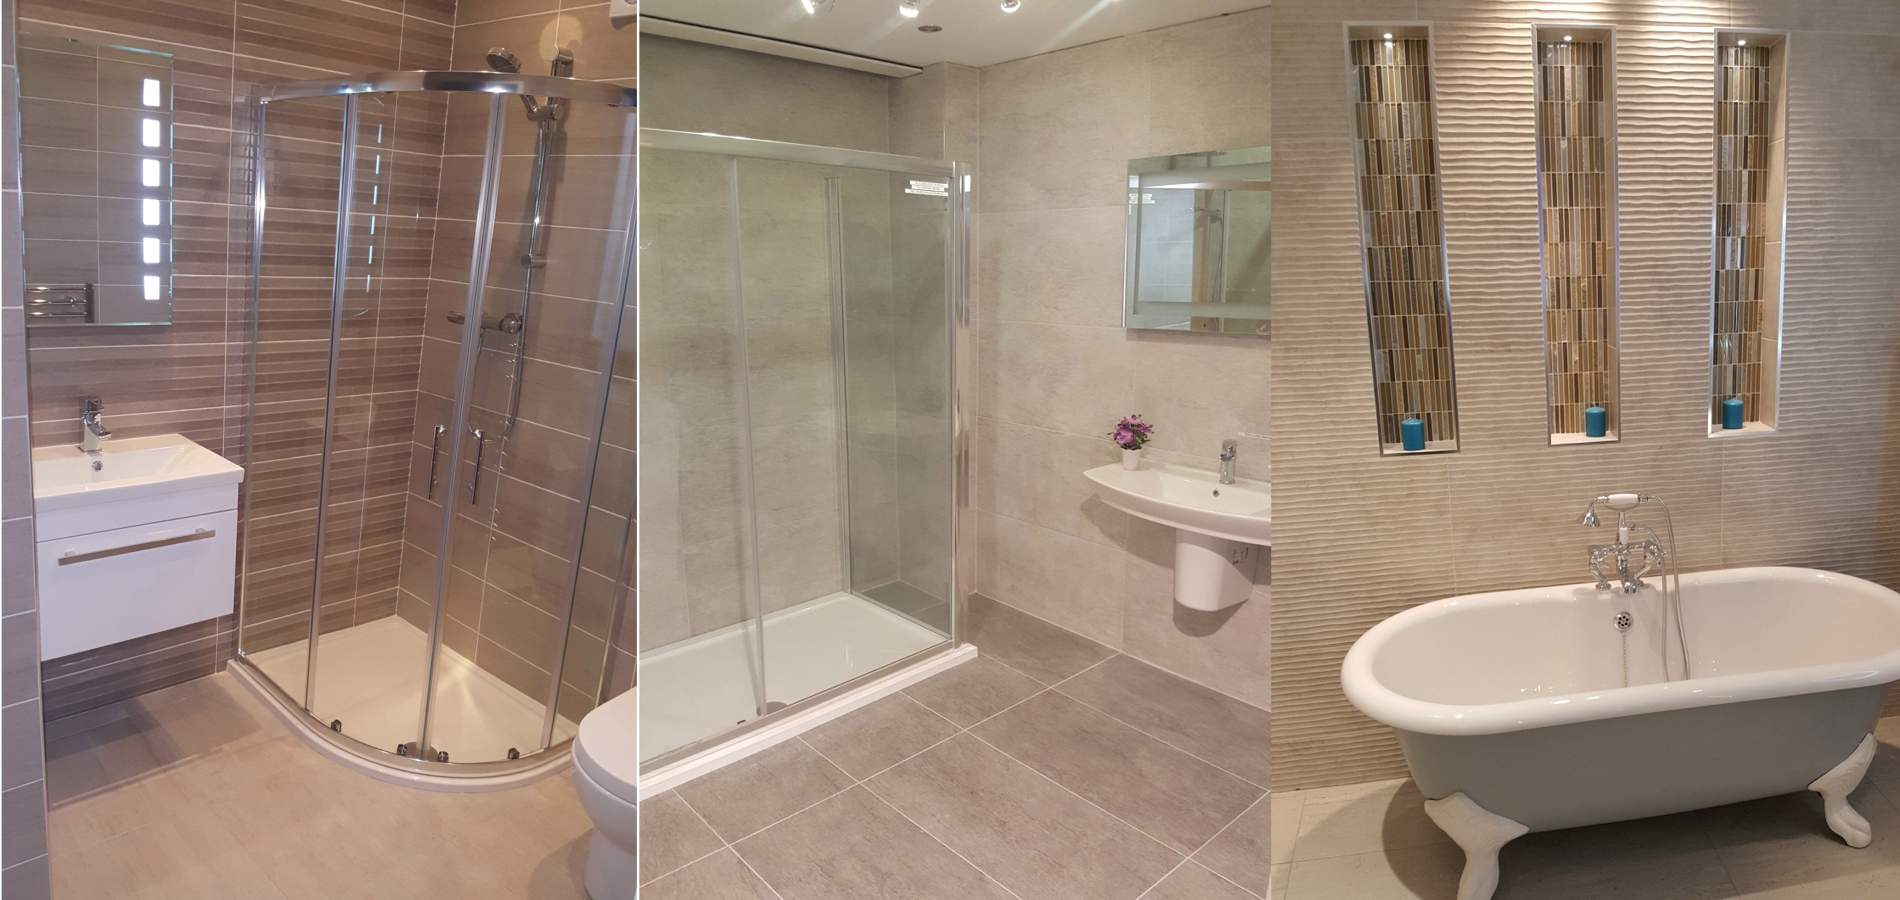 Bathrooms by North West Tiles & Timber, Co. Leitrim, Ireland